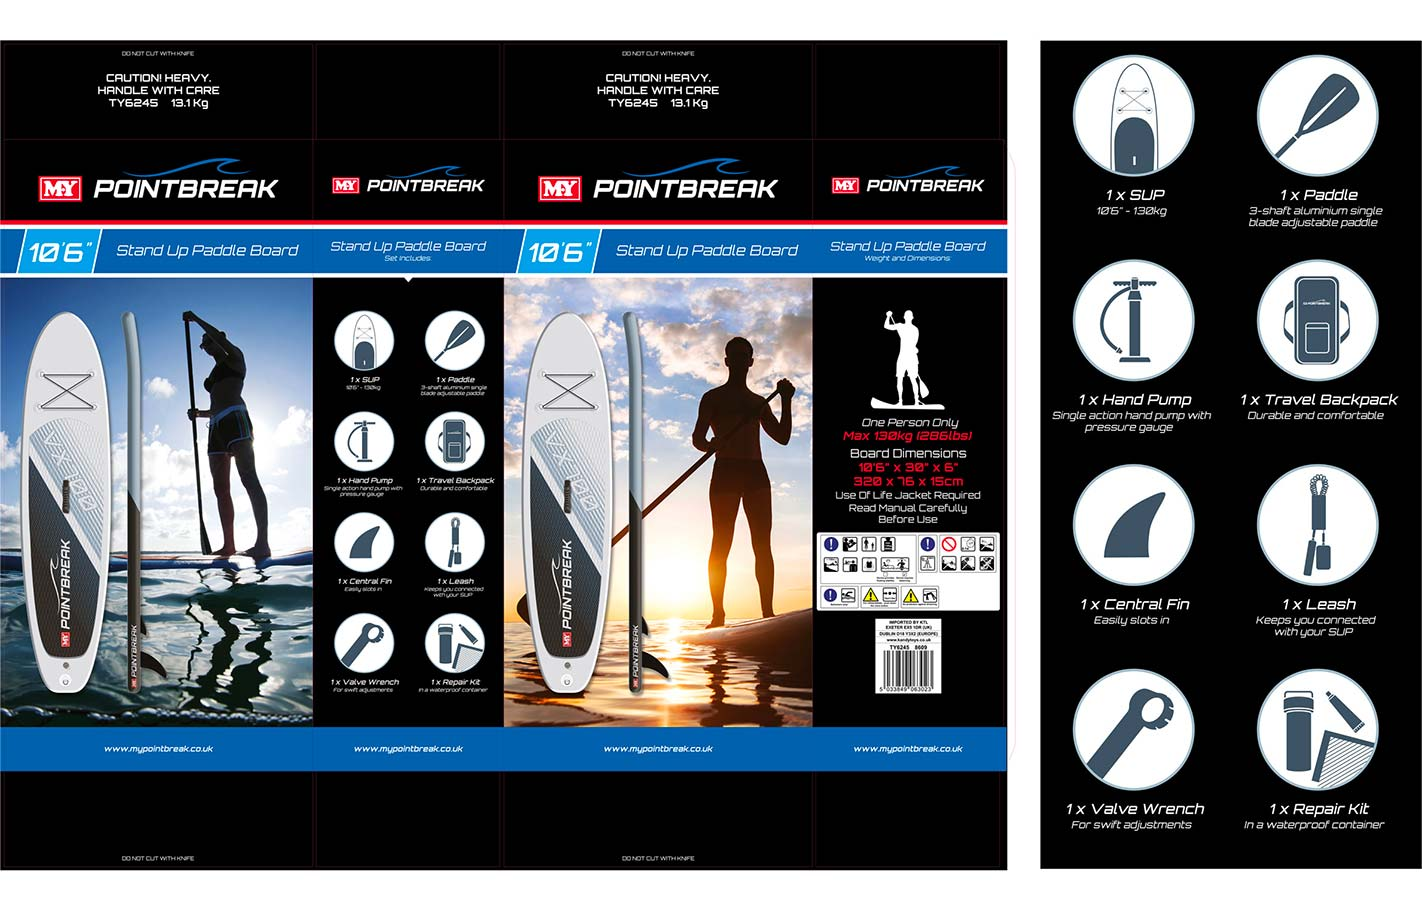 pointbreak-paddleboard-review-2